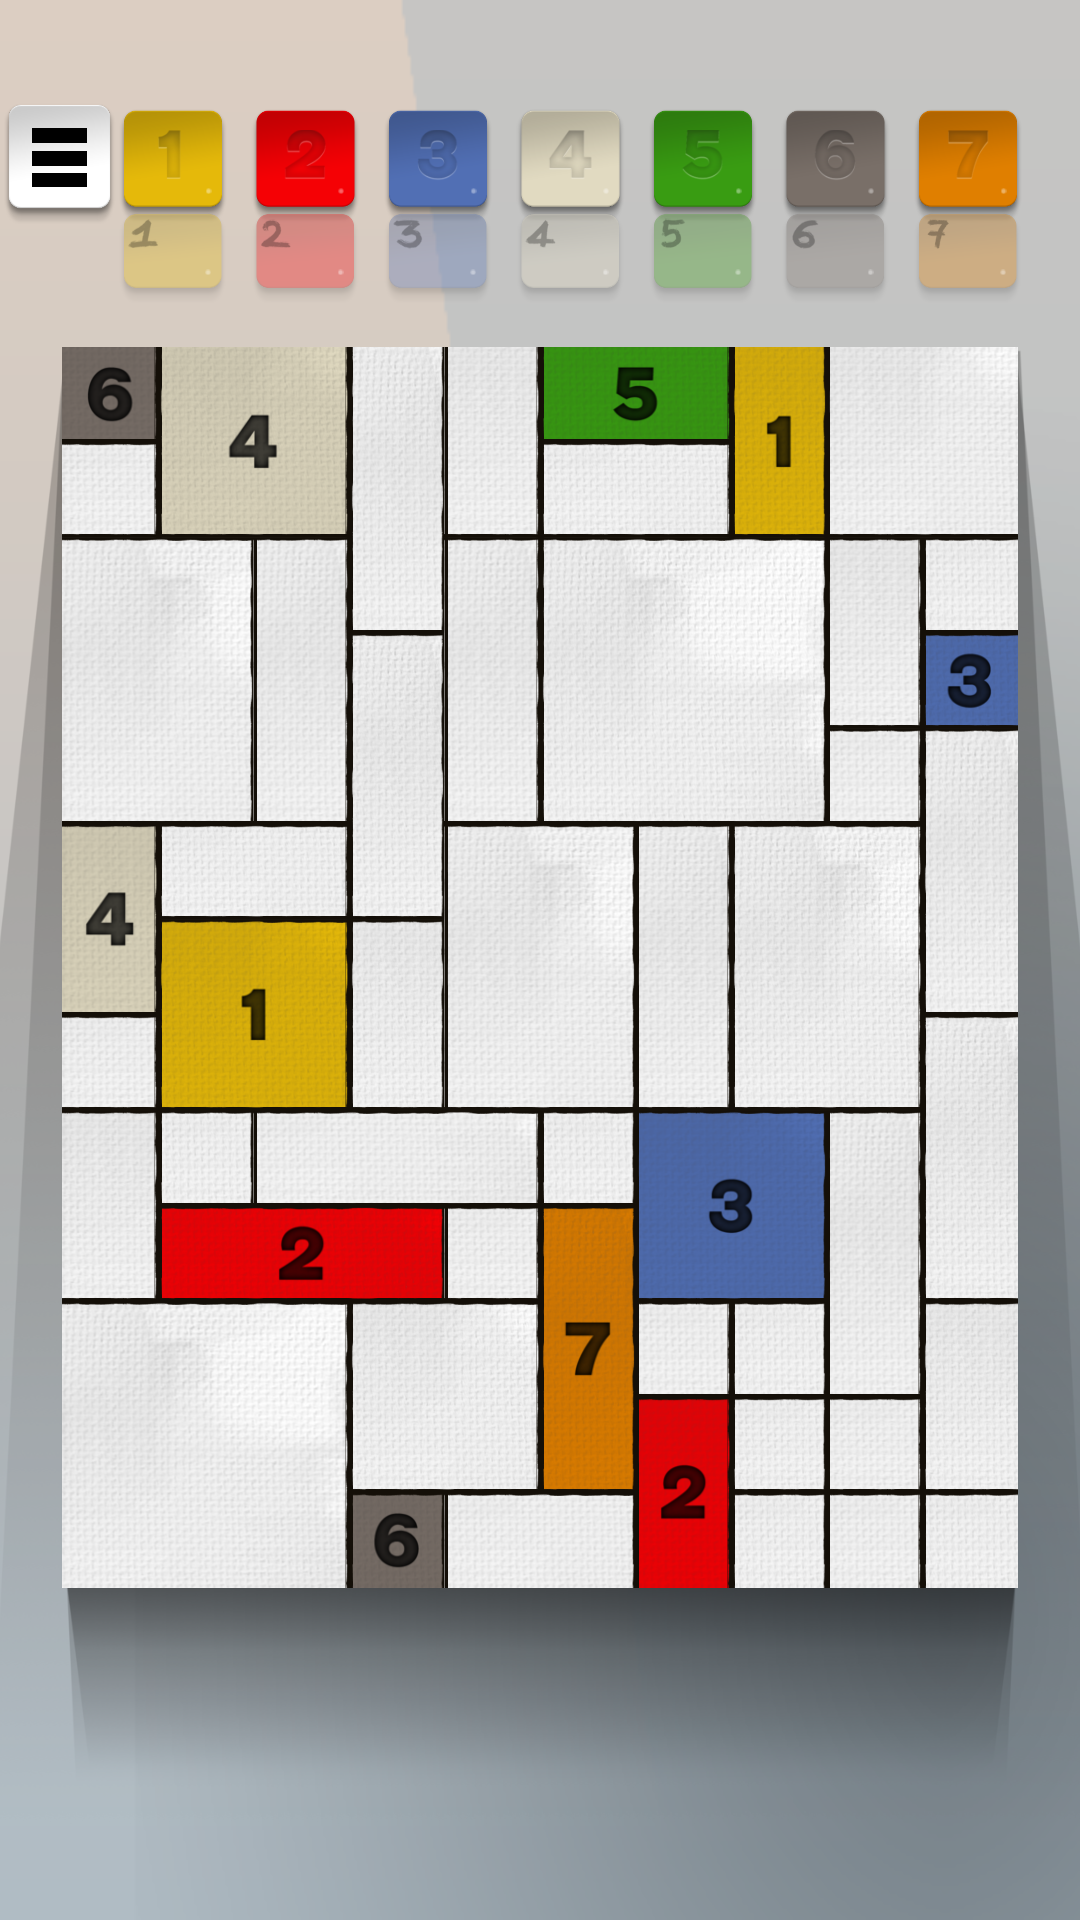 LITE Games to stir up the Sudoku community with art Image